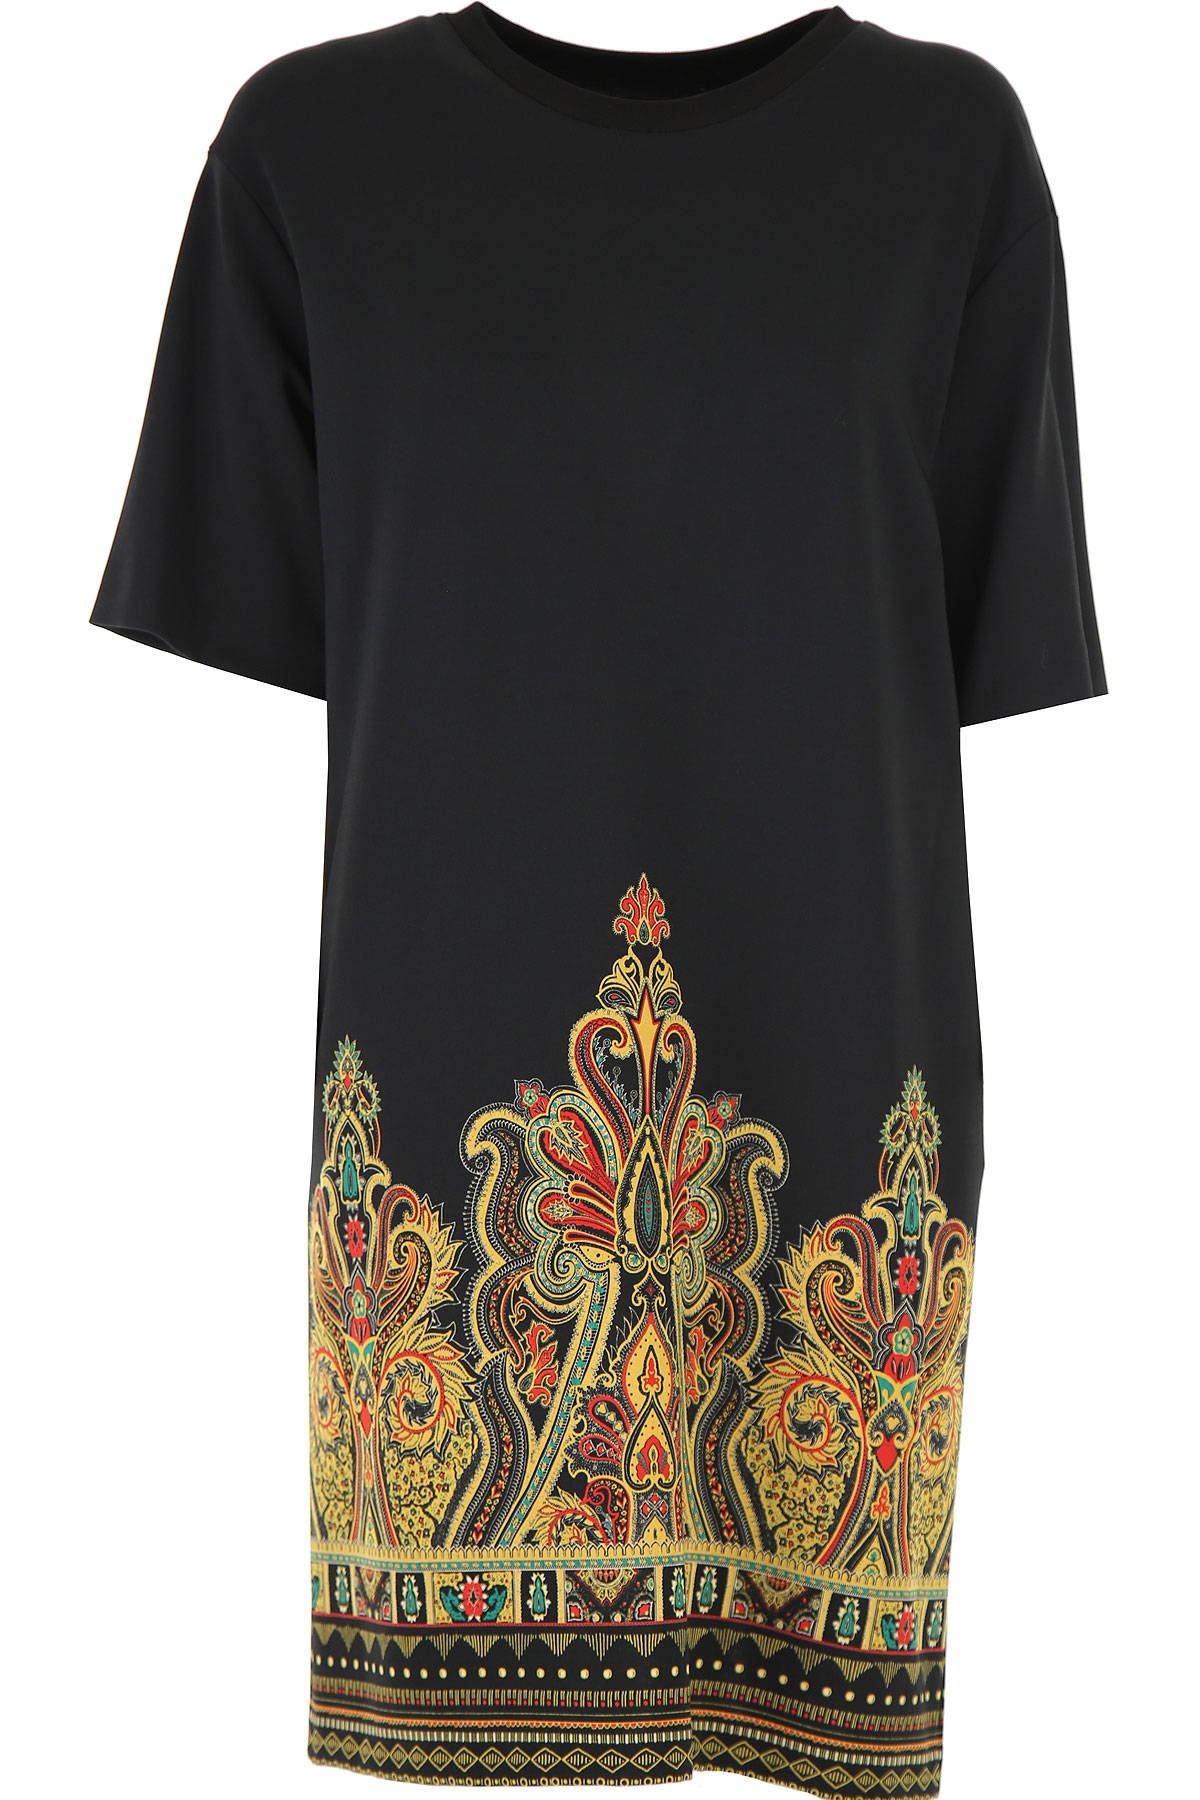 Etro Dress for Women, Evening Cocktail Party On Sale, Black, viscosa, 2019, 6 8